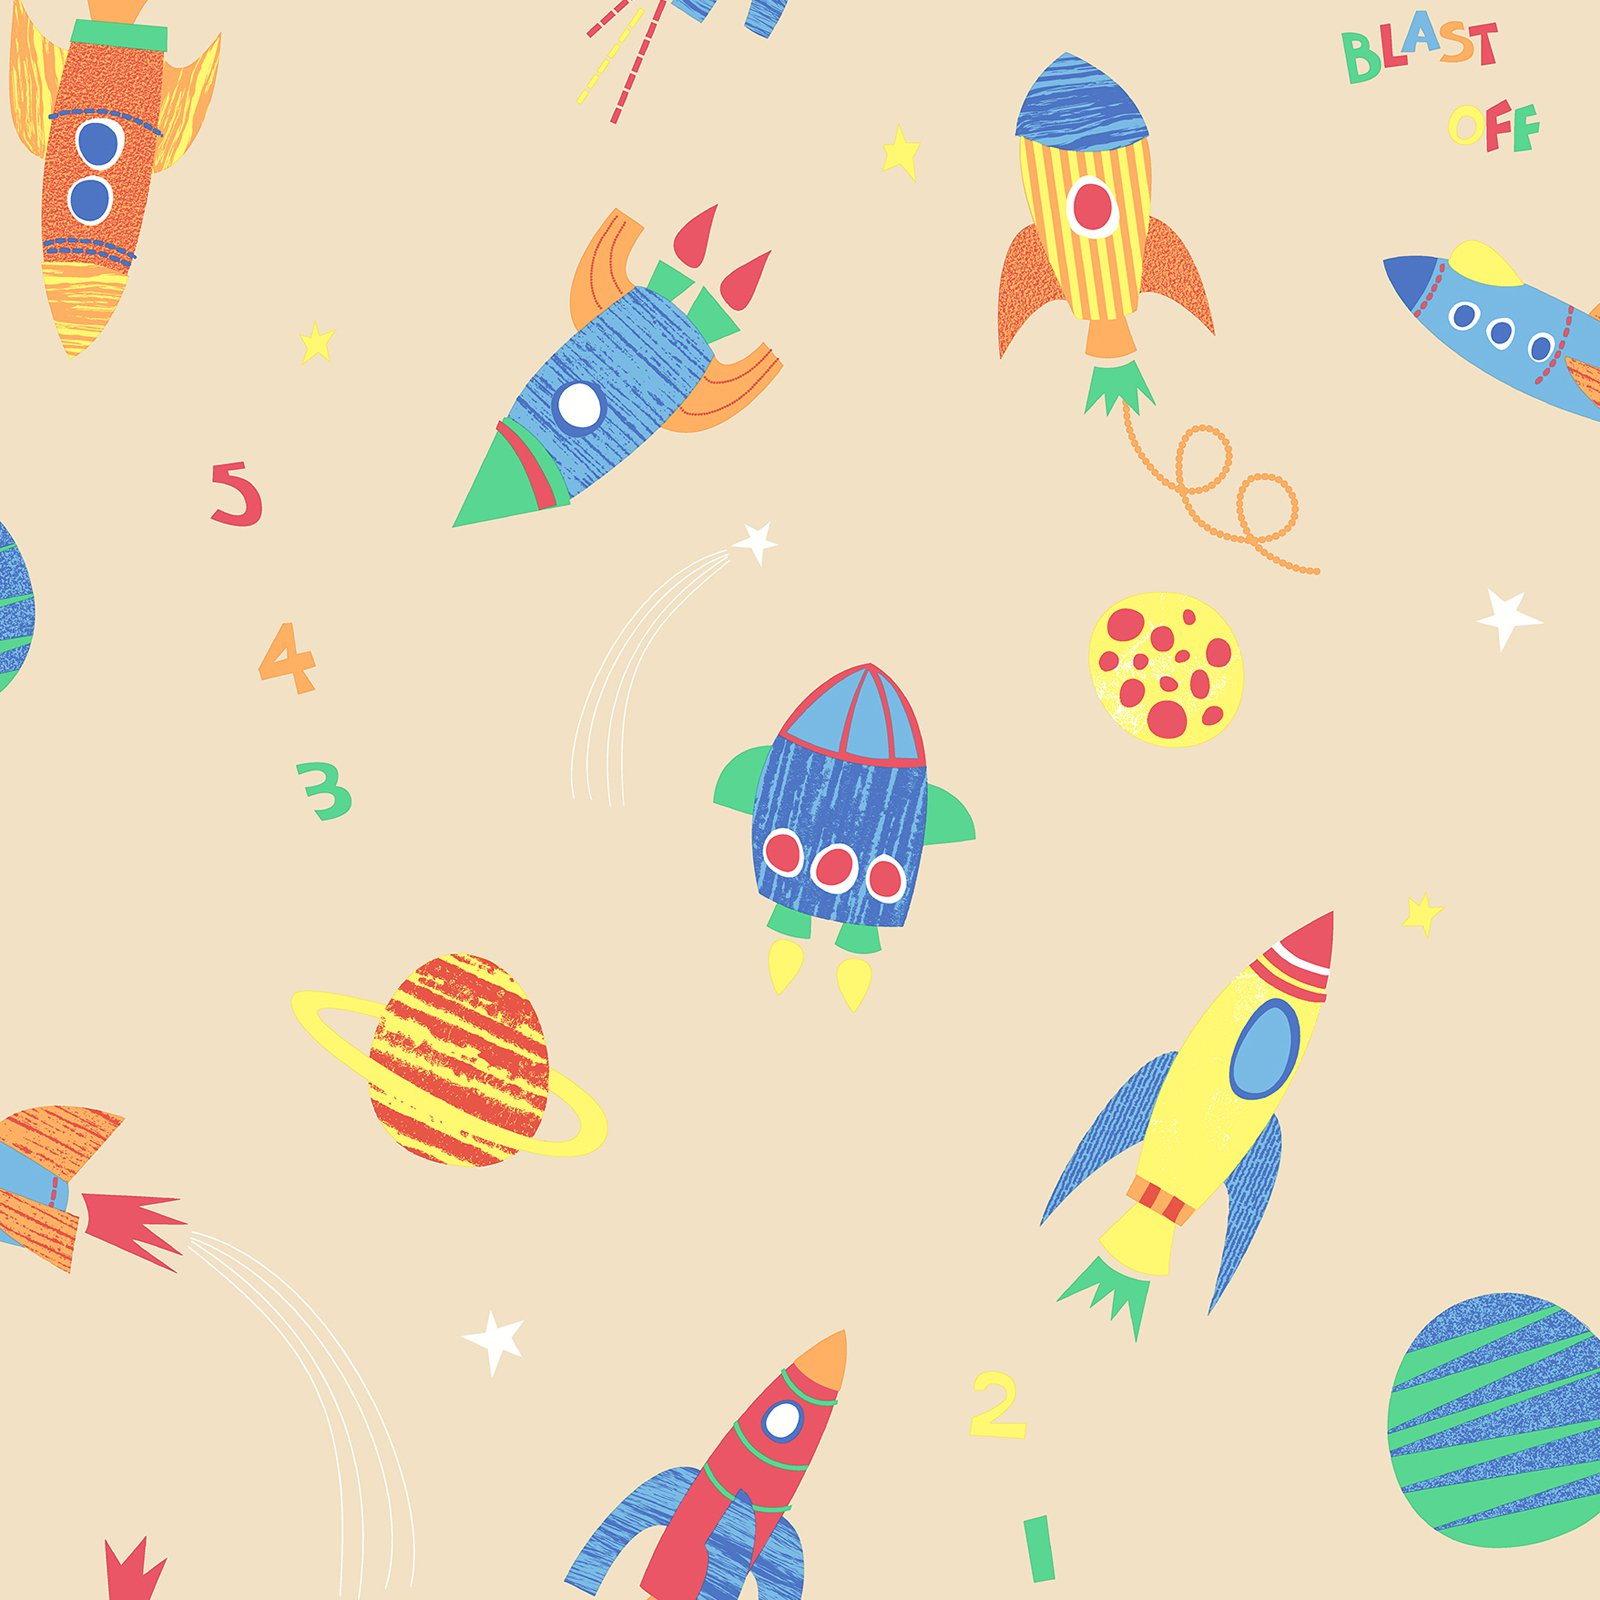 Brewster Blast Off Honey Outer Space Wallpaper